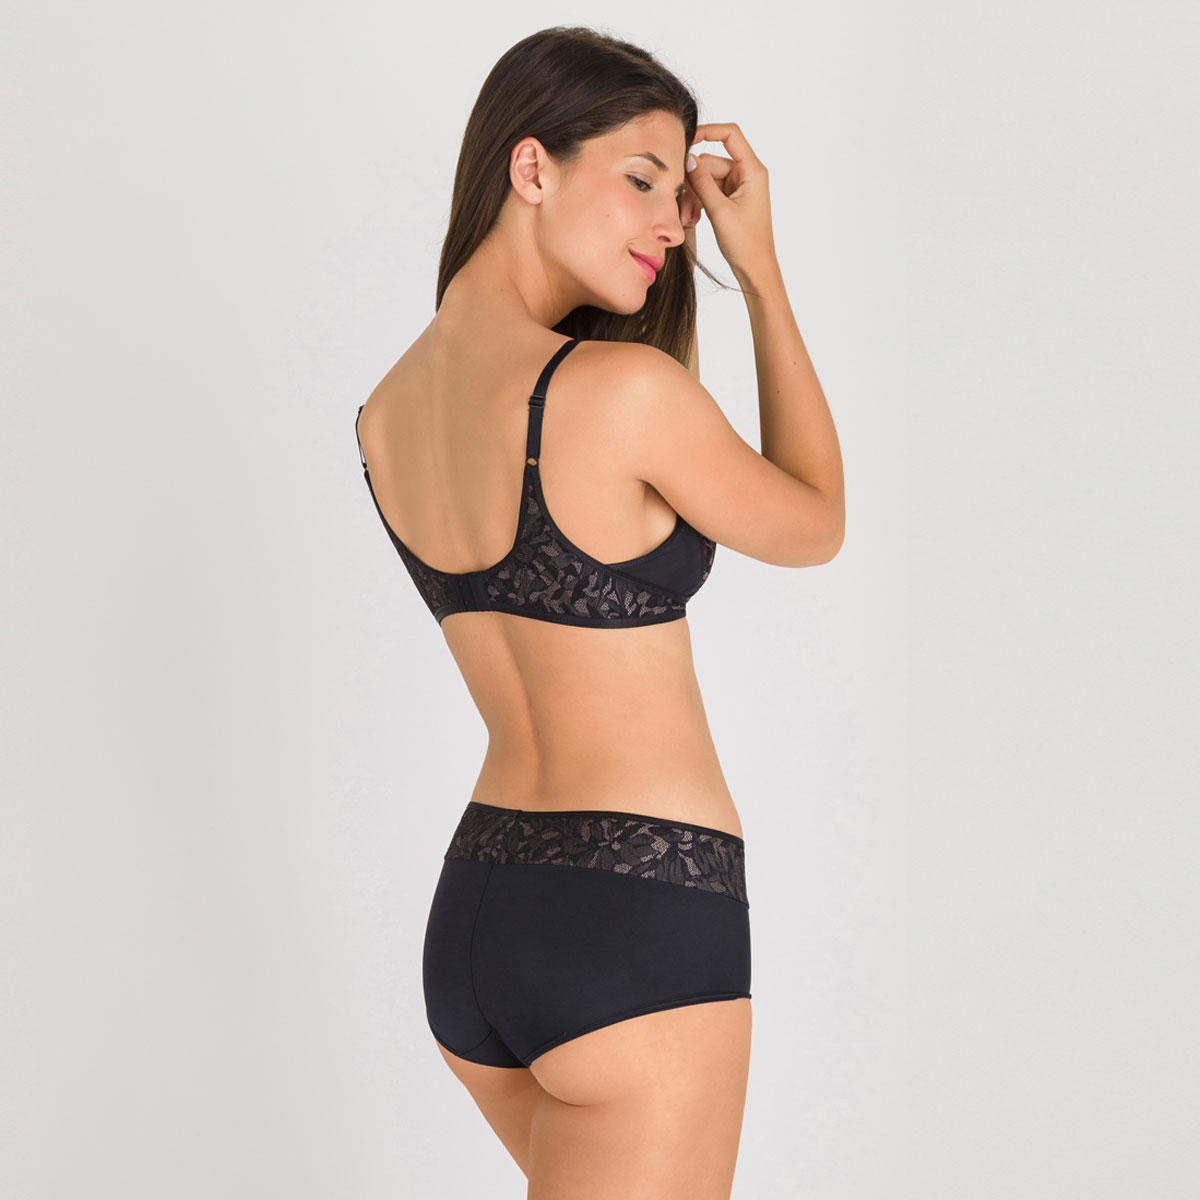 Non-wired Bra in Black and Grey - Ideal Beauty Lace-PLAYTEX